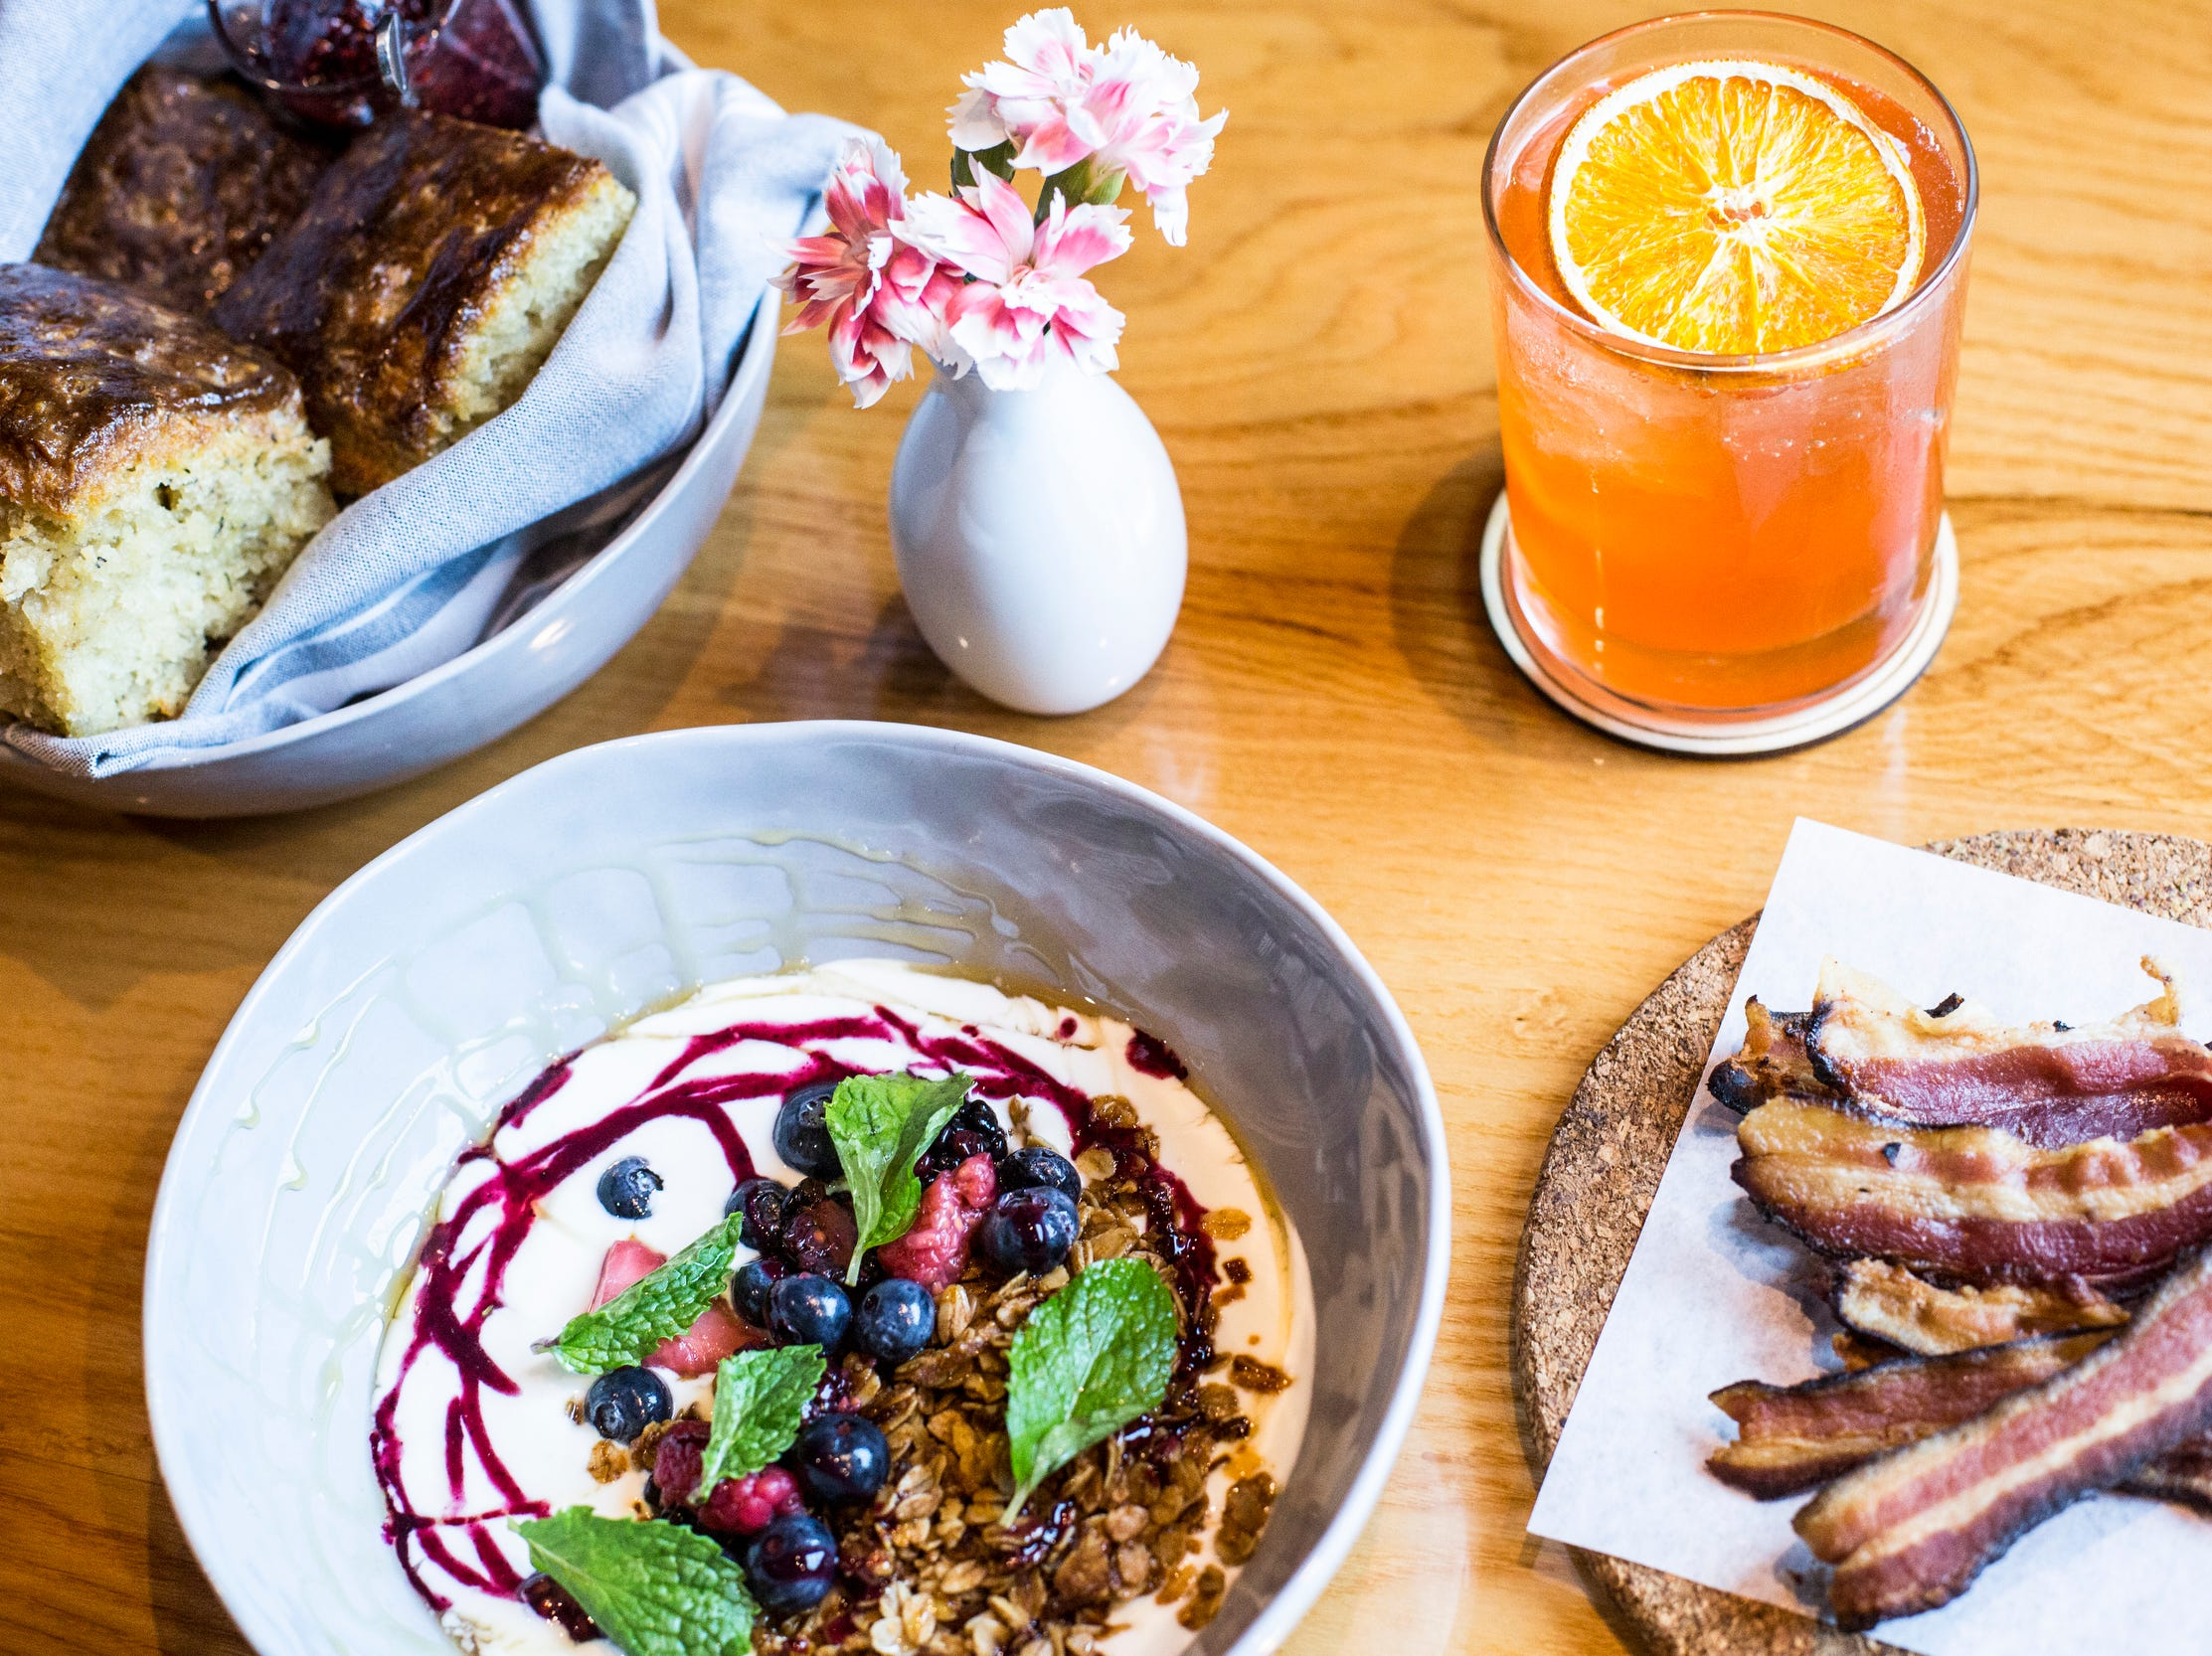 February 10, 2019 - From left, a biscuit basket, yogurt, rose spritz, and a serving of house bacon are seen during Sunday brunch at PO Press Public House & Provisions in Collierville. PO Press Public House & Provisions is located at 148 N Main St. in Collierville.